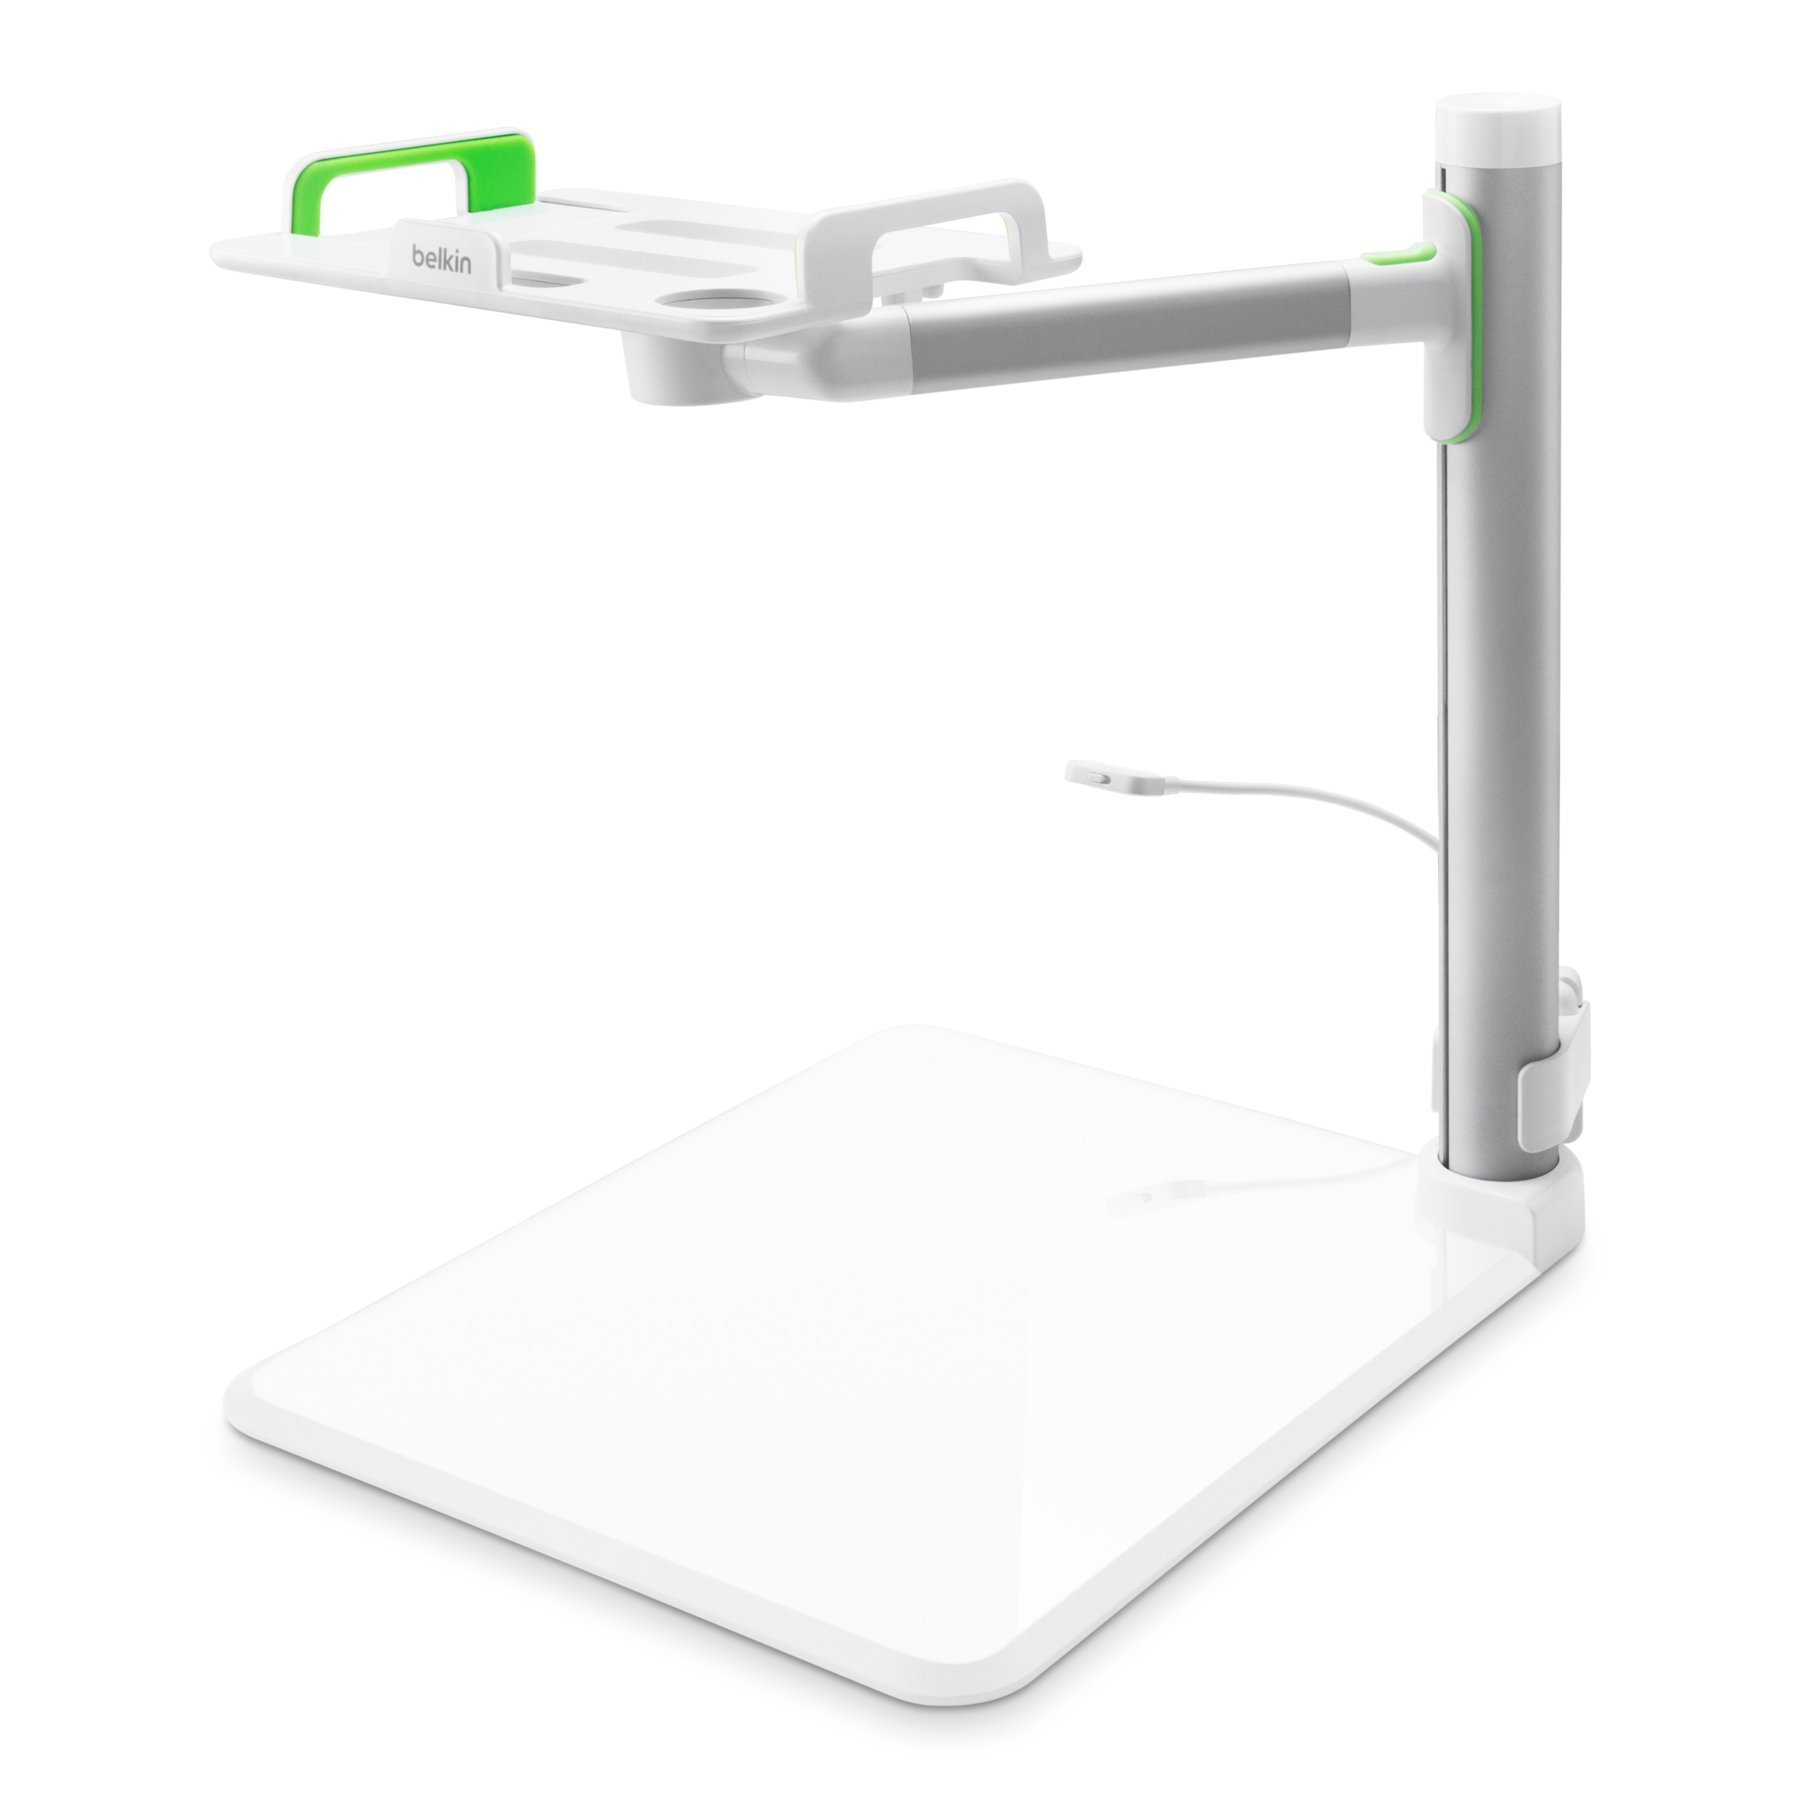 Belkin B2B054 Tablet Stage Stand for Presenters and Lecturers for Tablets from 7-11 Inches Including All Generations of iPad, iPad mini and iPad Air, Designed for School and Classroom by Belkin (Image #2)